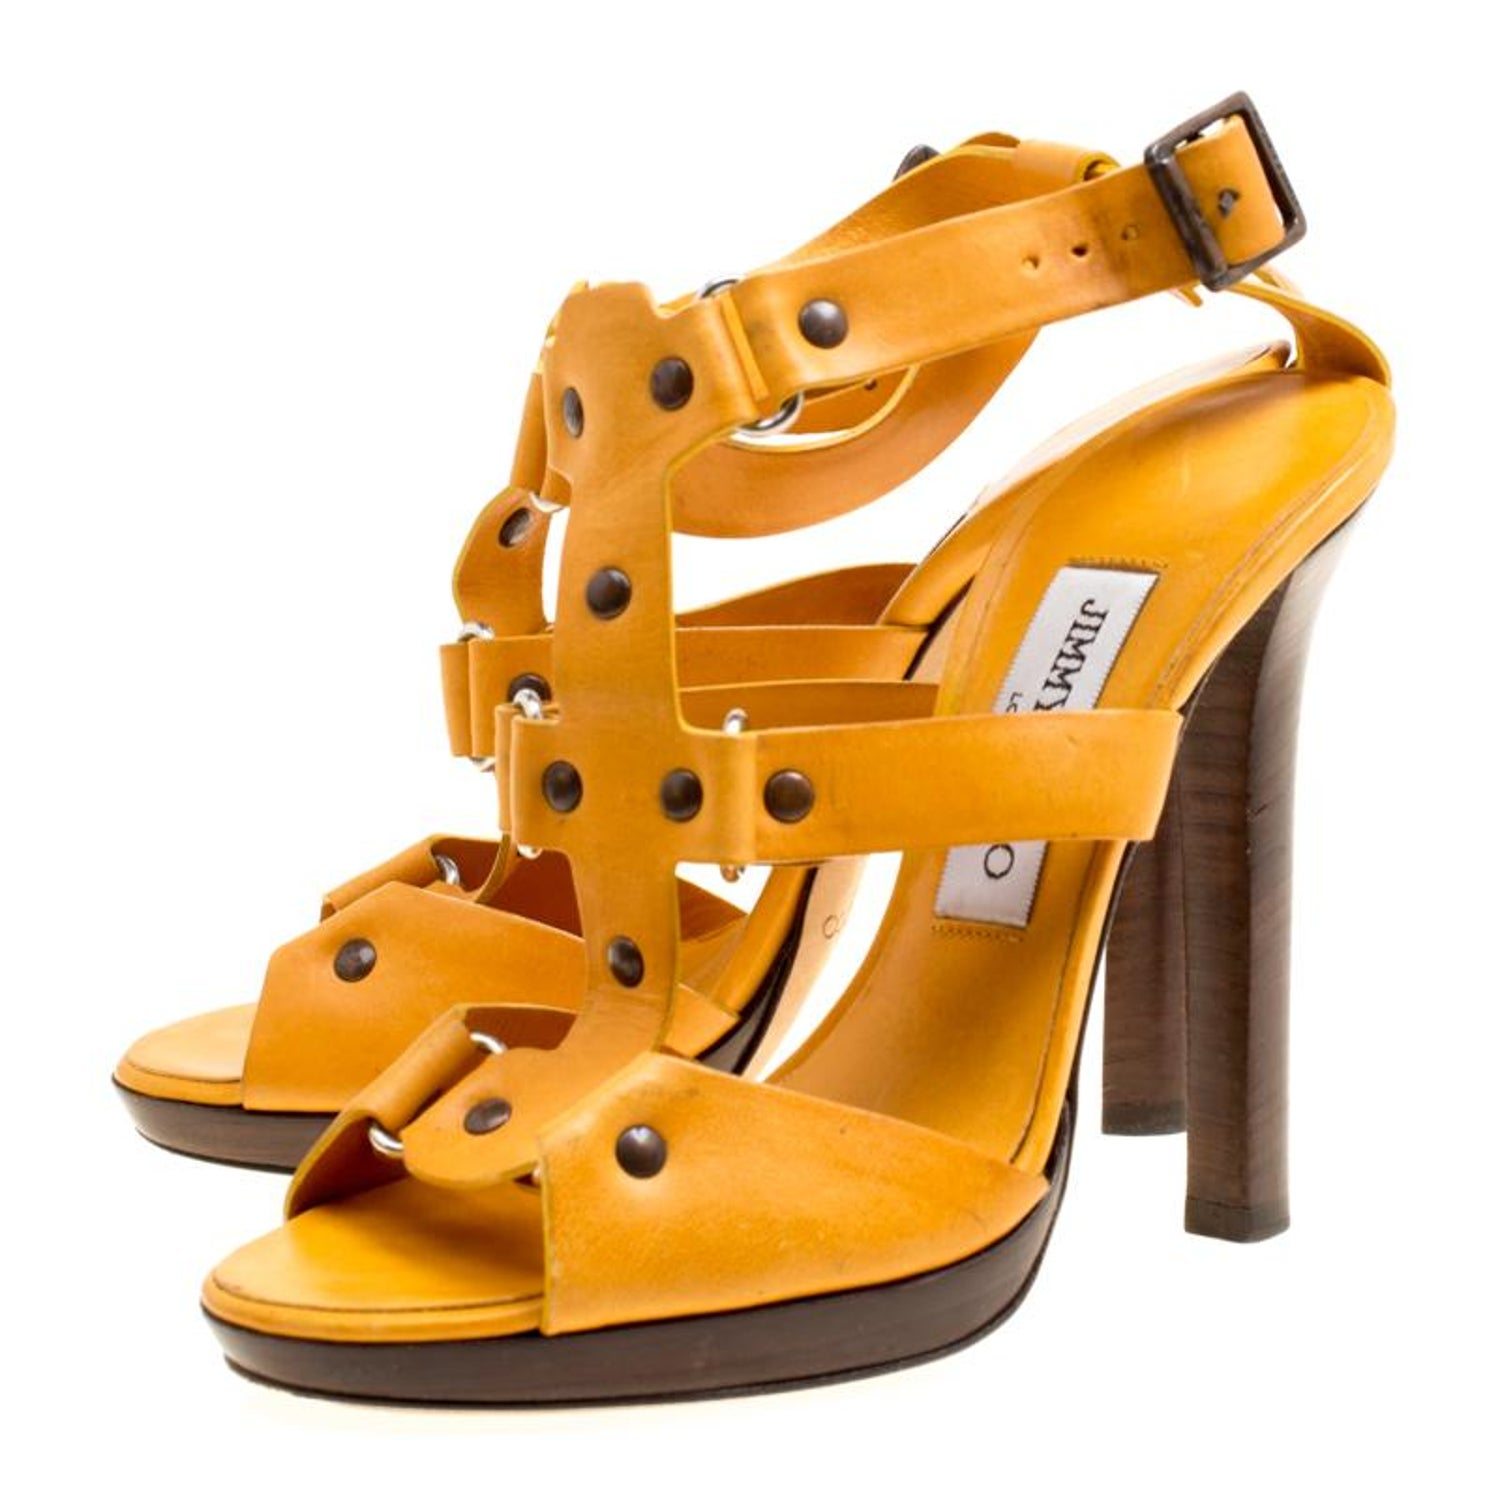 c61ea3d7d8e Jimmy Choo Mustard Yellow Studded Leather Cage Sandals Size 37 For Sale at  1stdibs